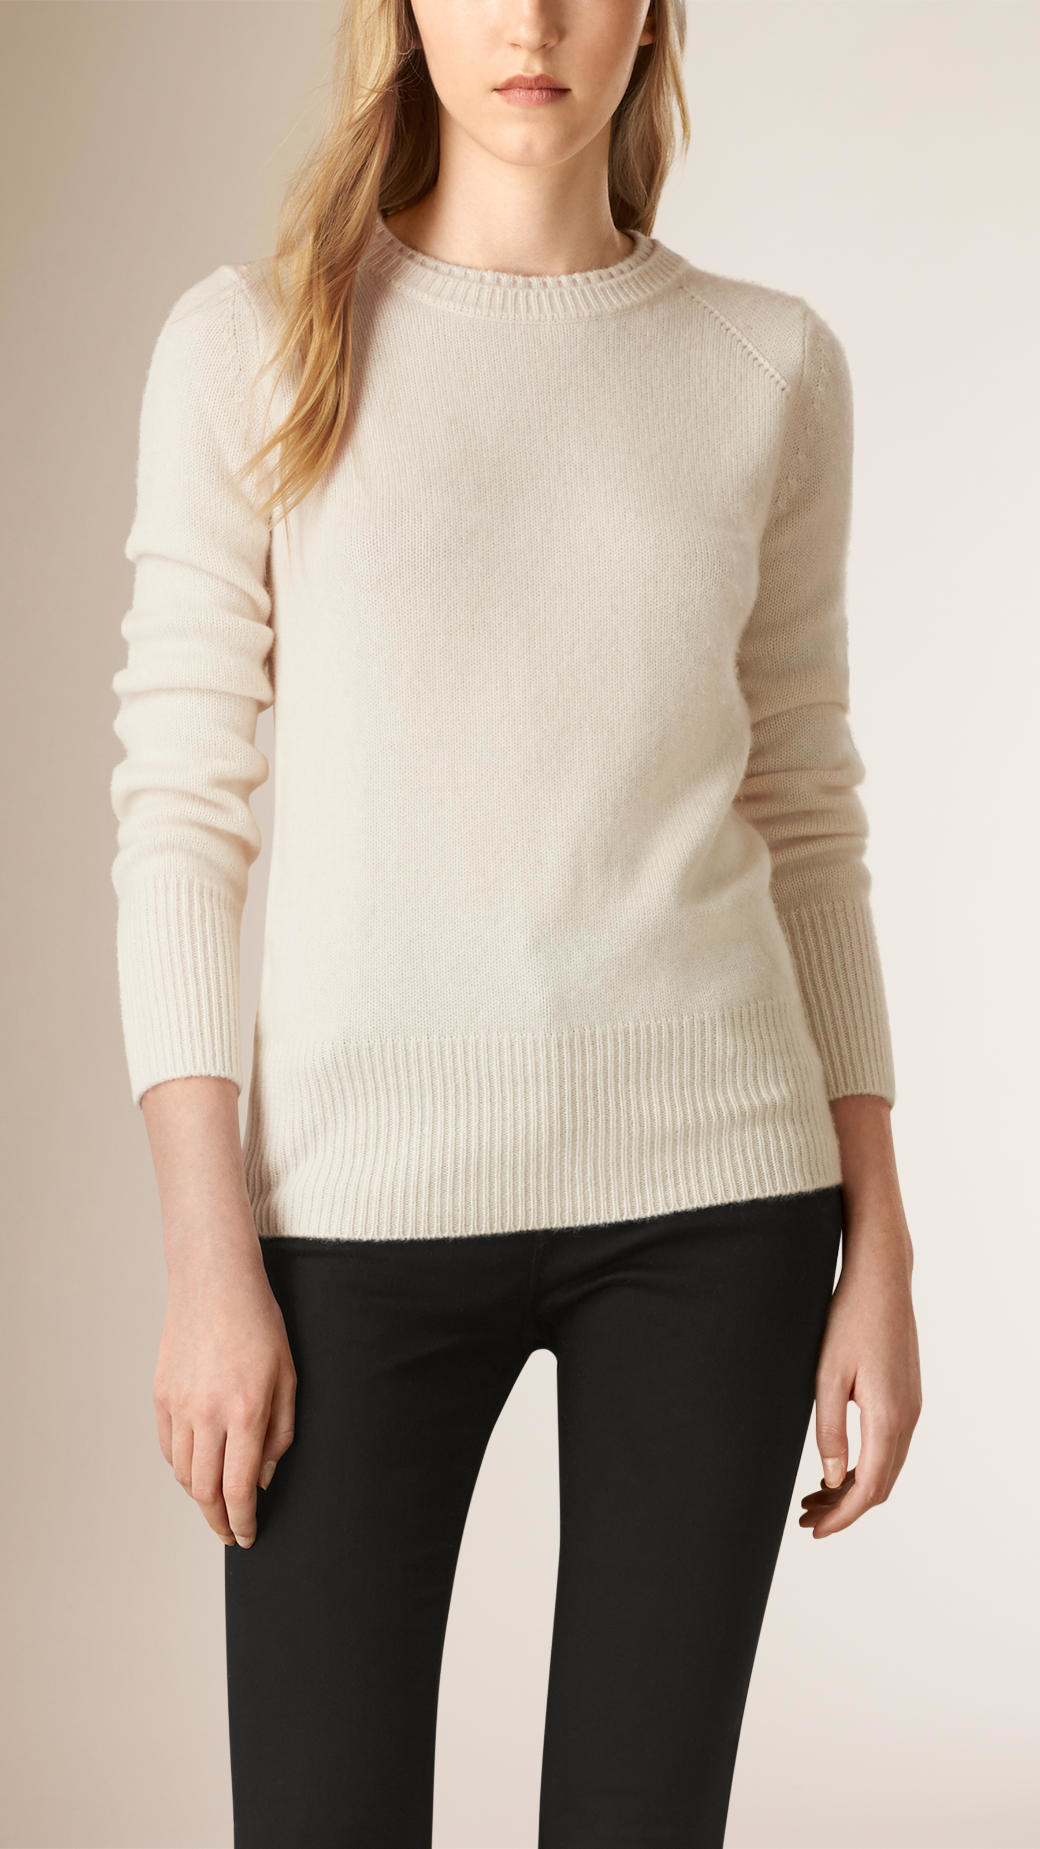 Burberry Crew Neck Cashmere Sweater Natural White in Natural | Lyst